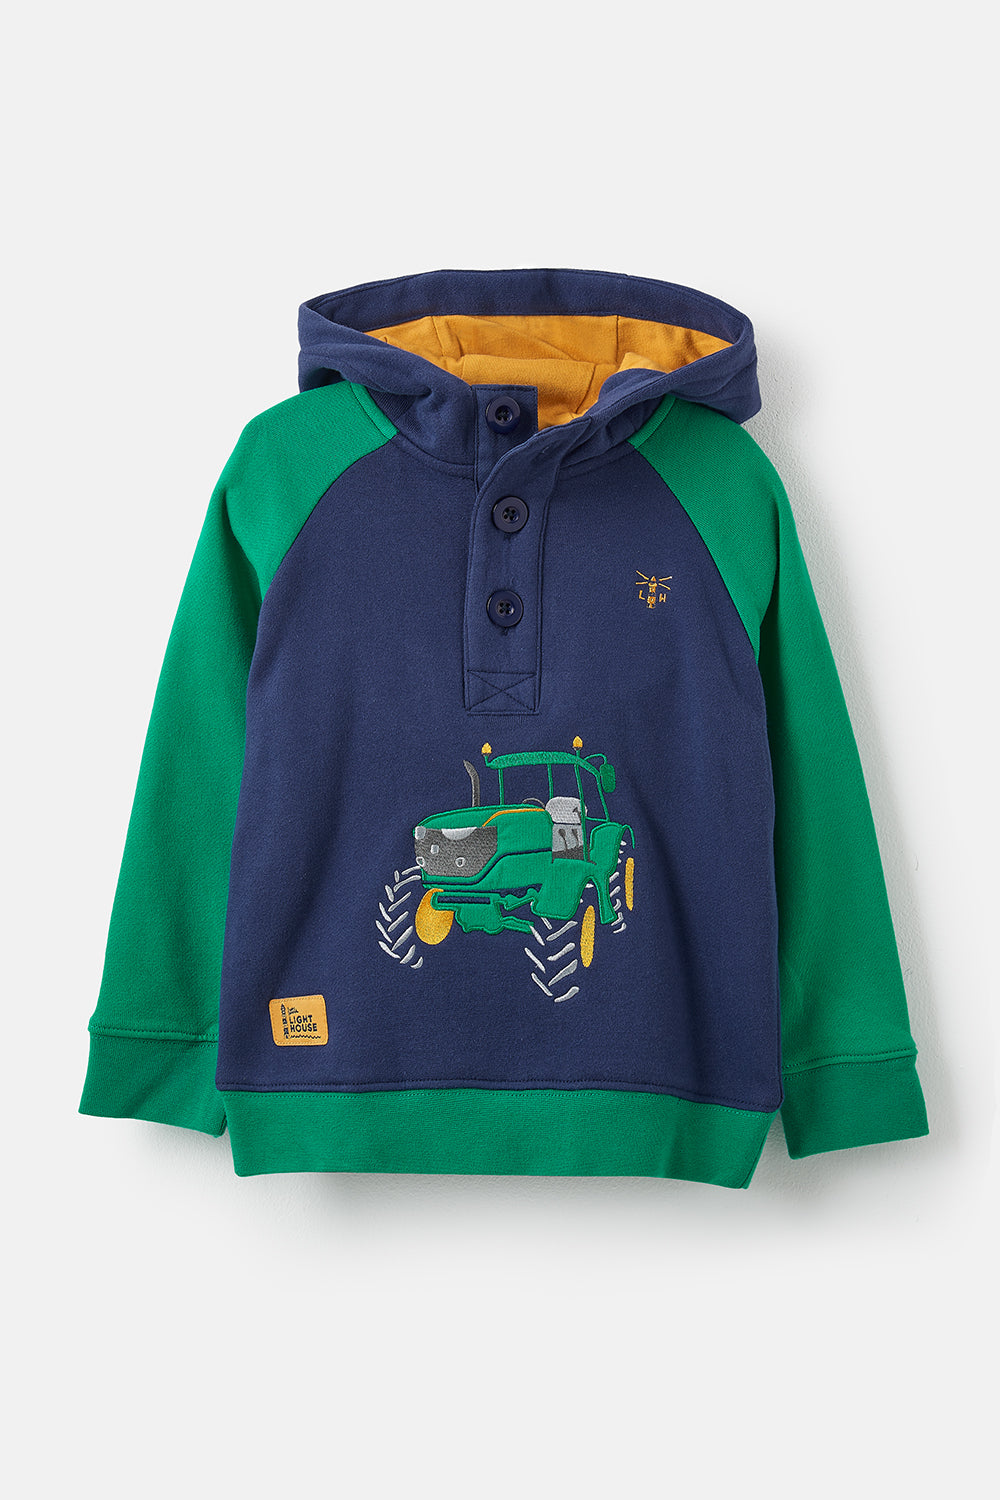 Lighthouse Jack Boy's Warm Hoodie - Tractor Print